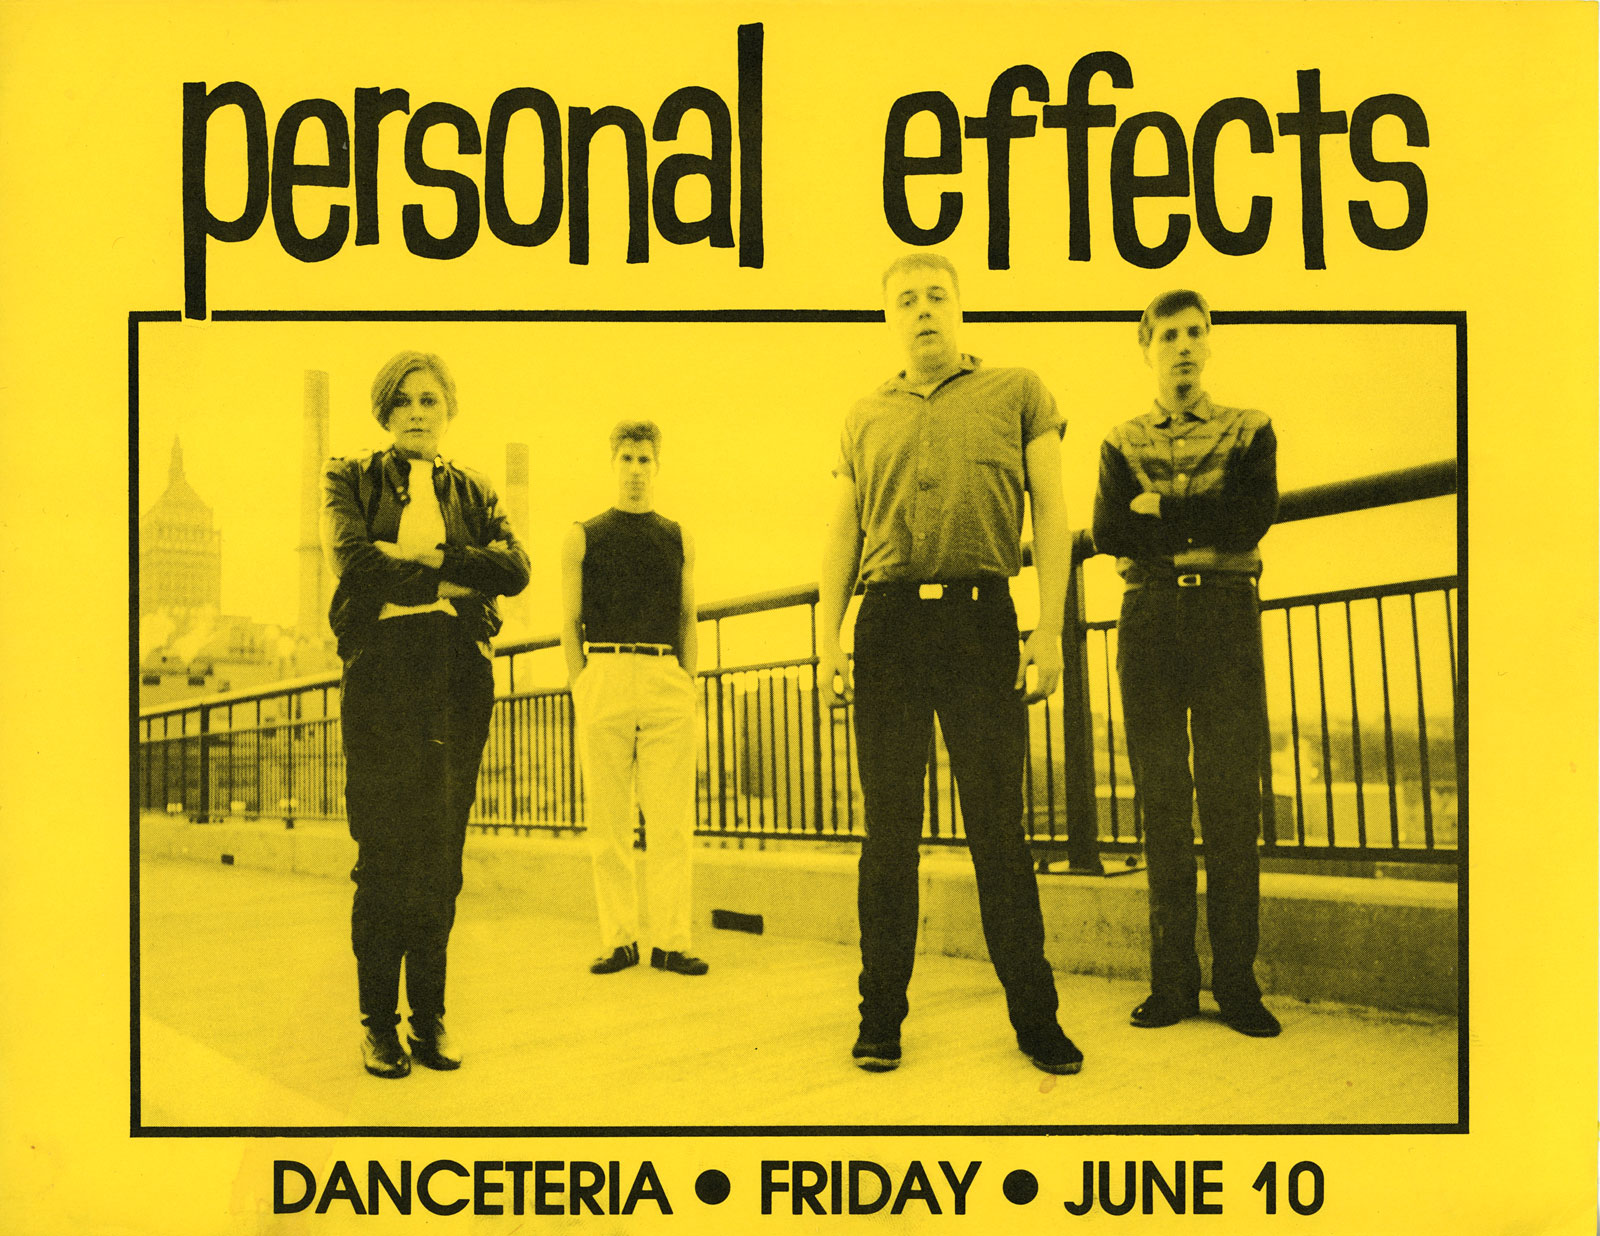 Poster for Personal Effects at Danceteria in New York City 06.10.1983